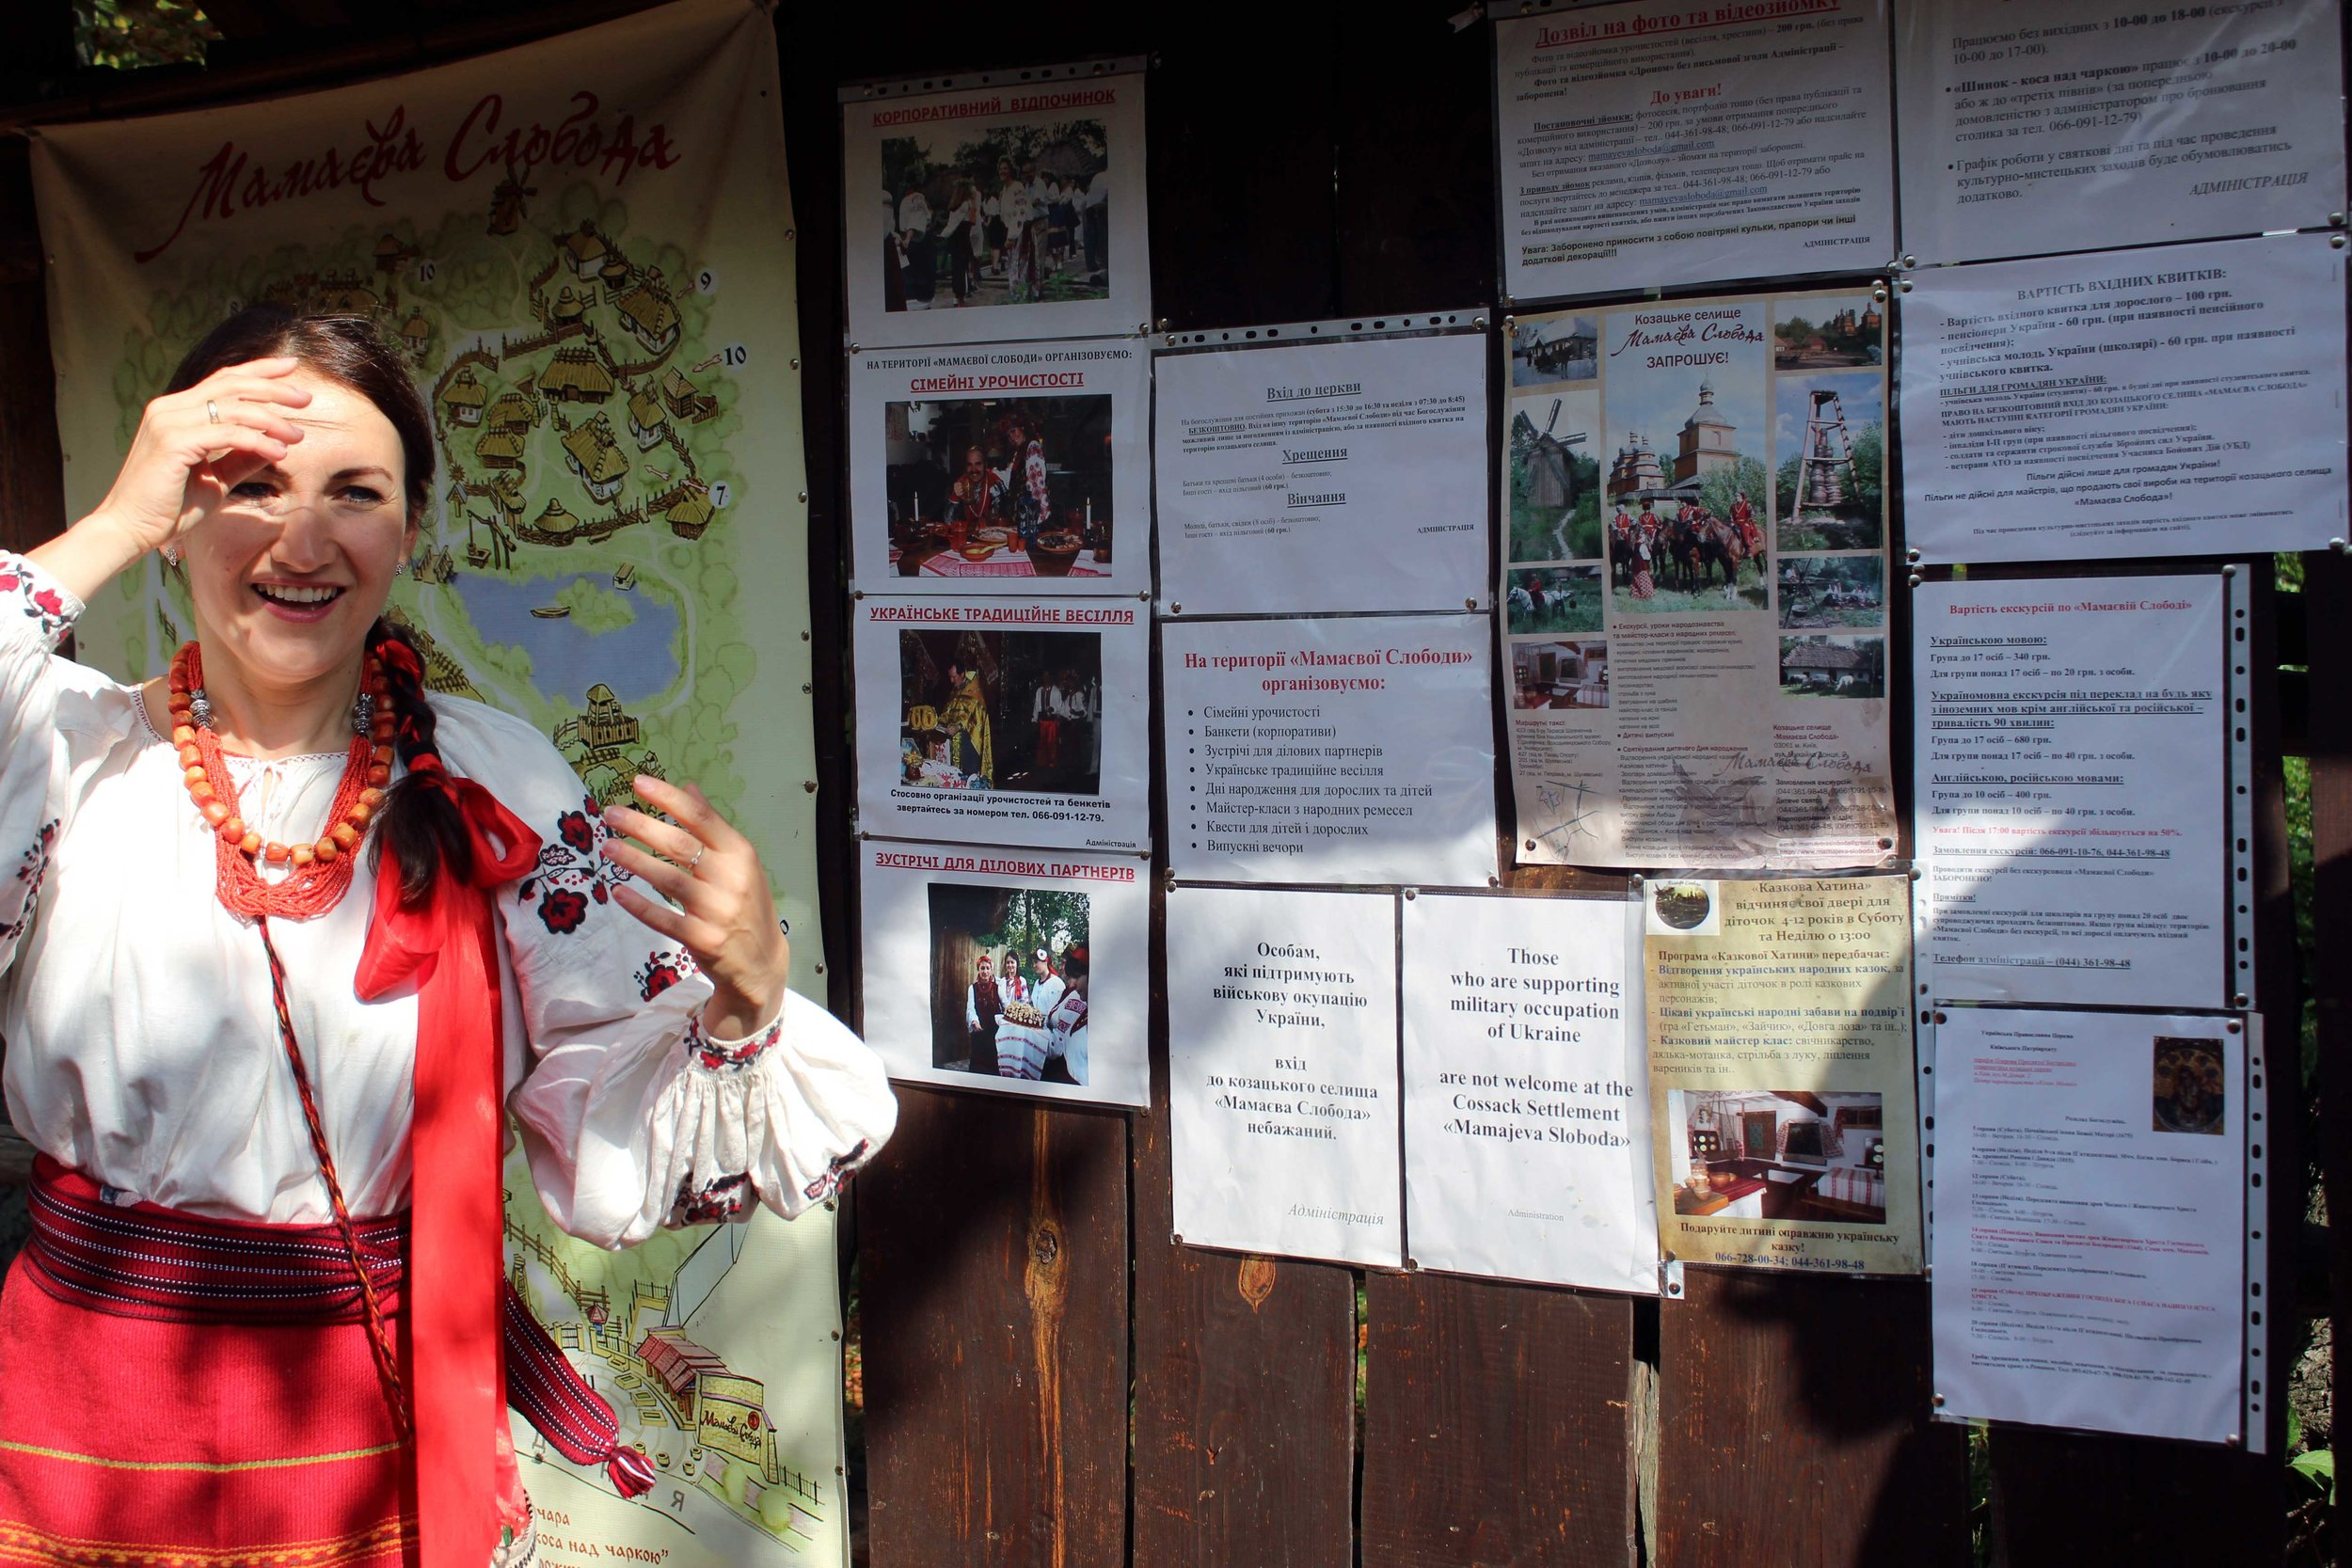 """""""Those who are supporting military occupation of Ukraine are not welcome at the Cossack Settlement Mamjeva Sloboda."""""""